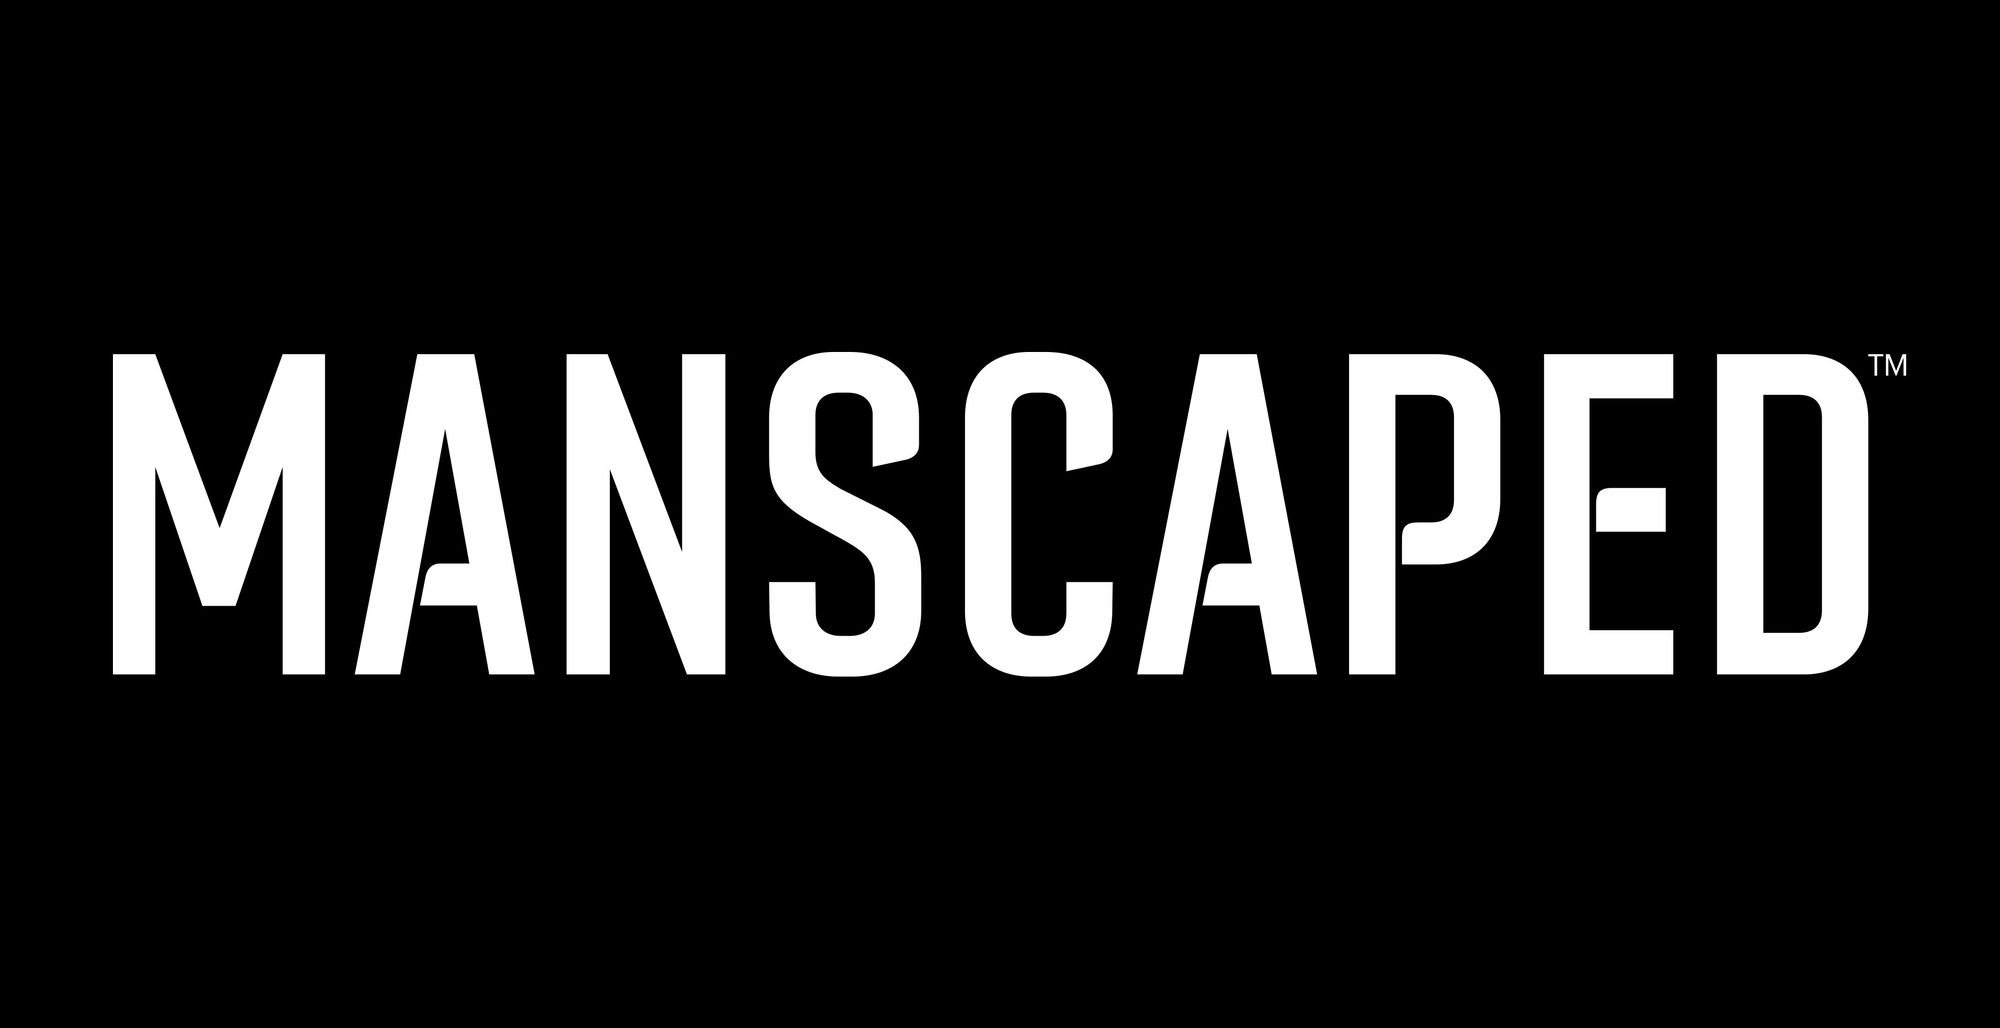 Where Is The Manscaped™ Refined® Cologne Sold?